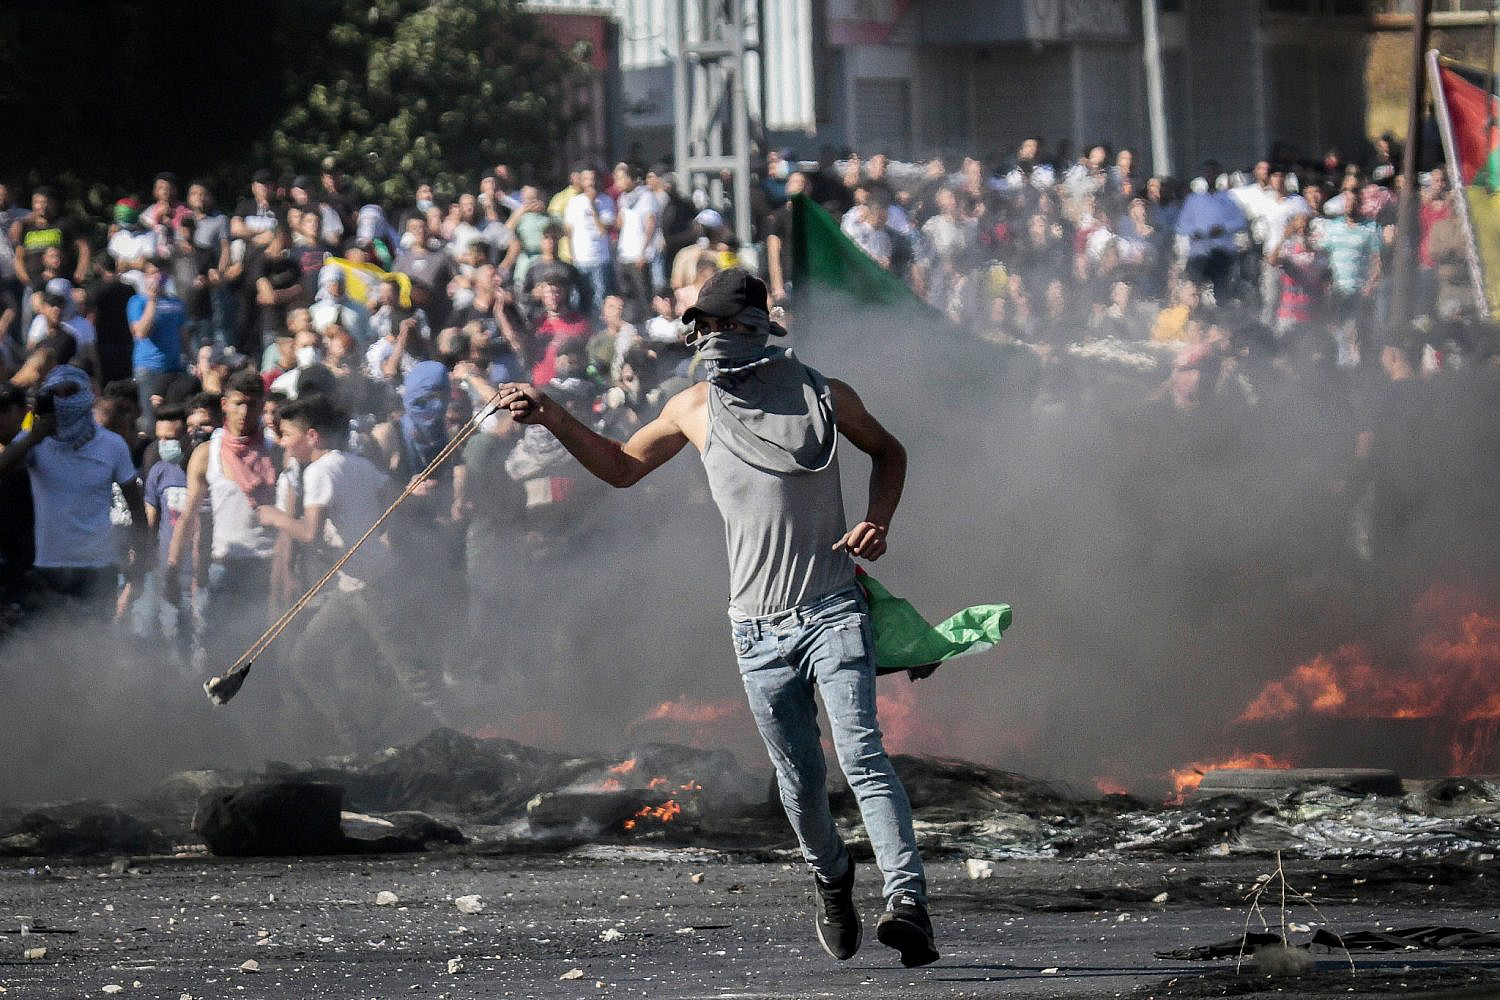 Palestinian protesters clash with Israeli security forces near the Hawara checkpoint, south of the West Bank city of Nablus, May 18, 2021. (Nasser Ishtayeh/Flash90)